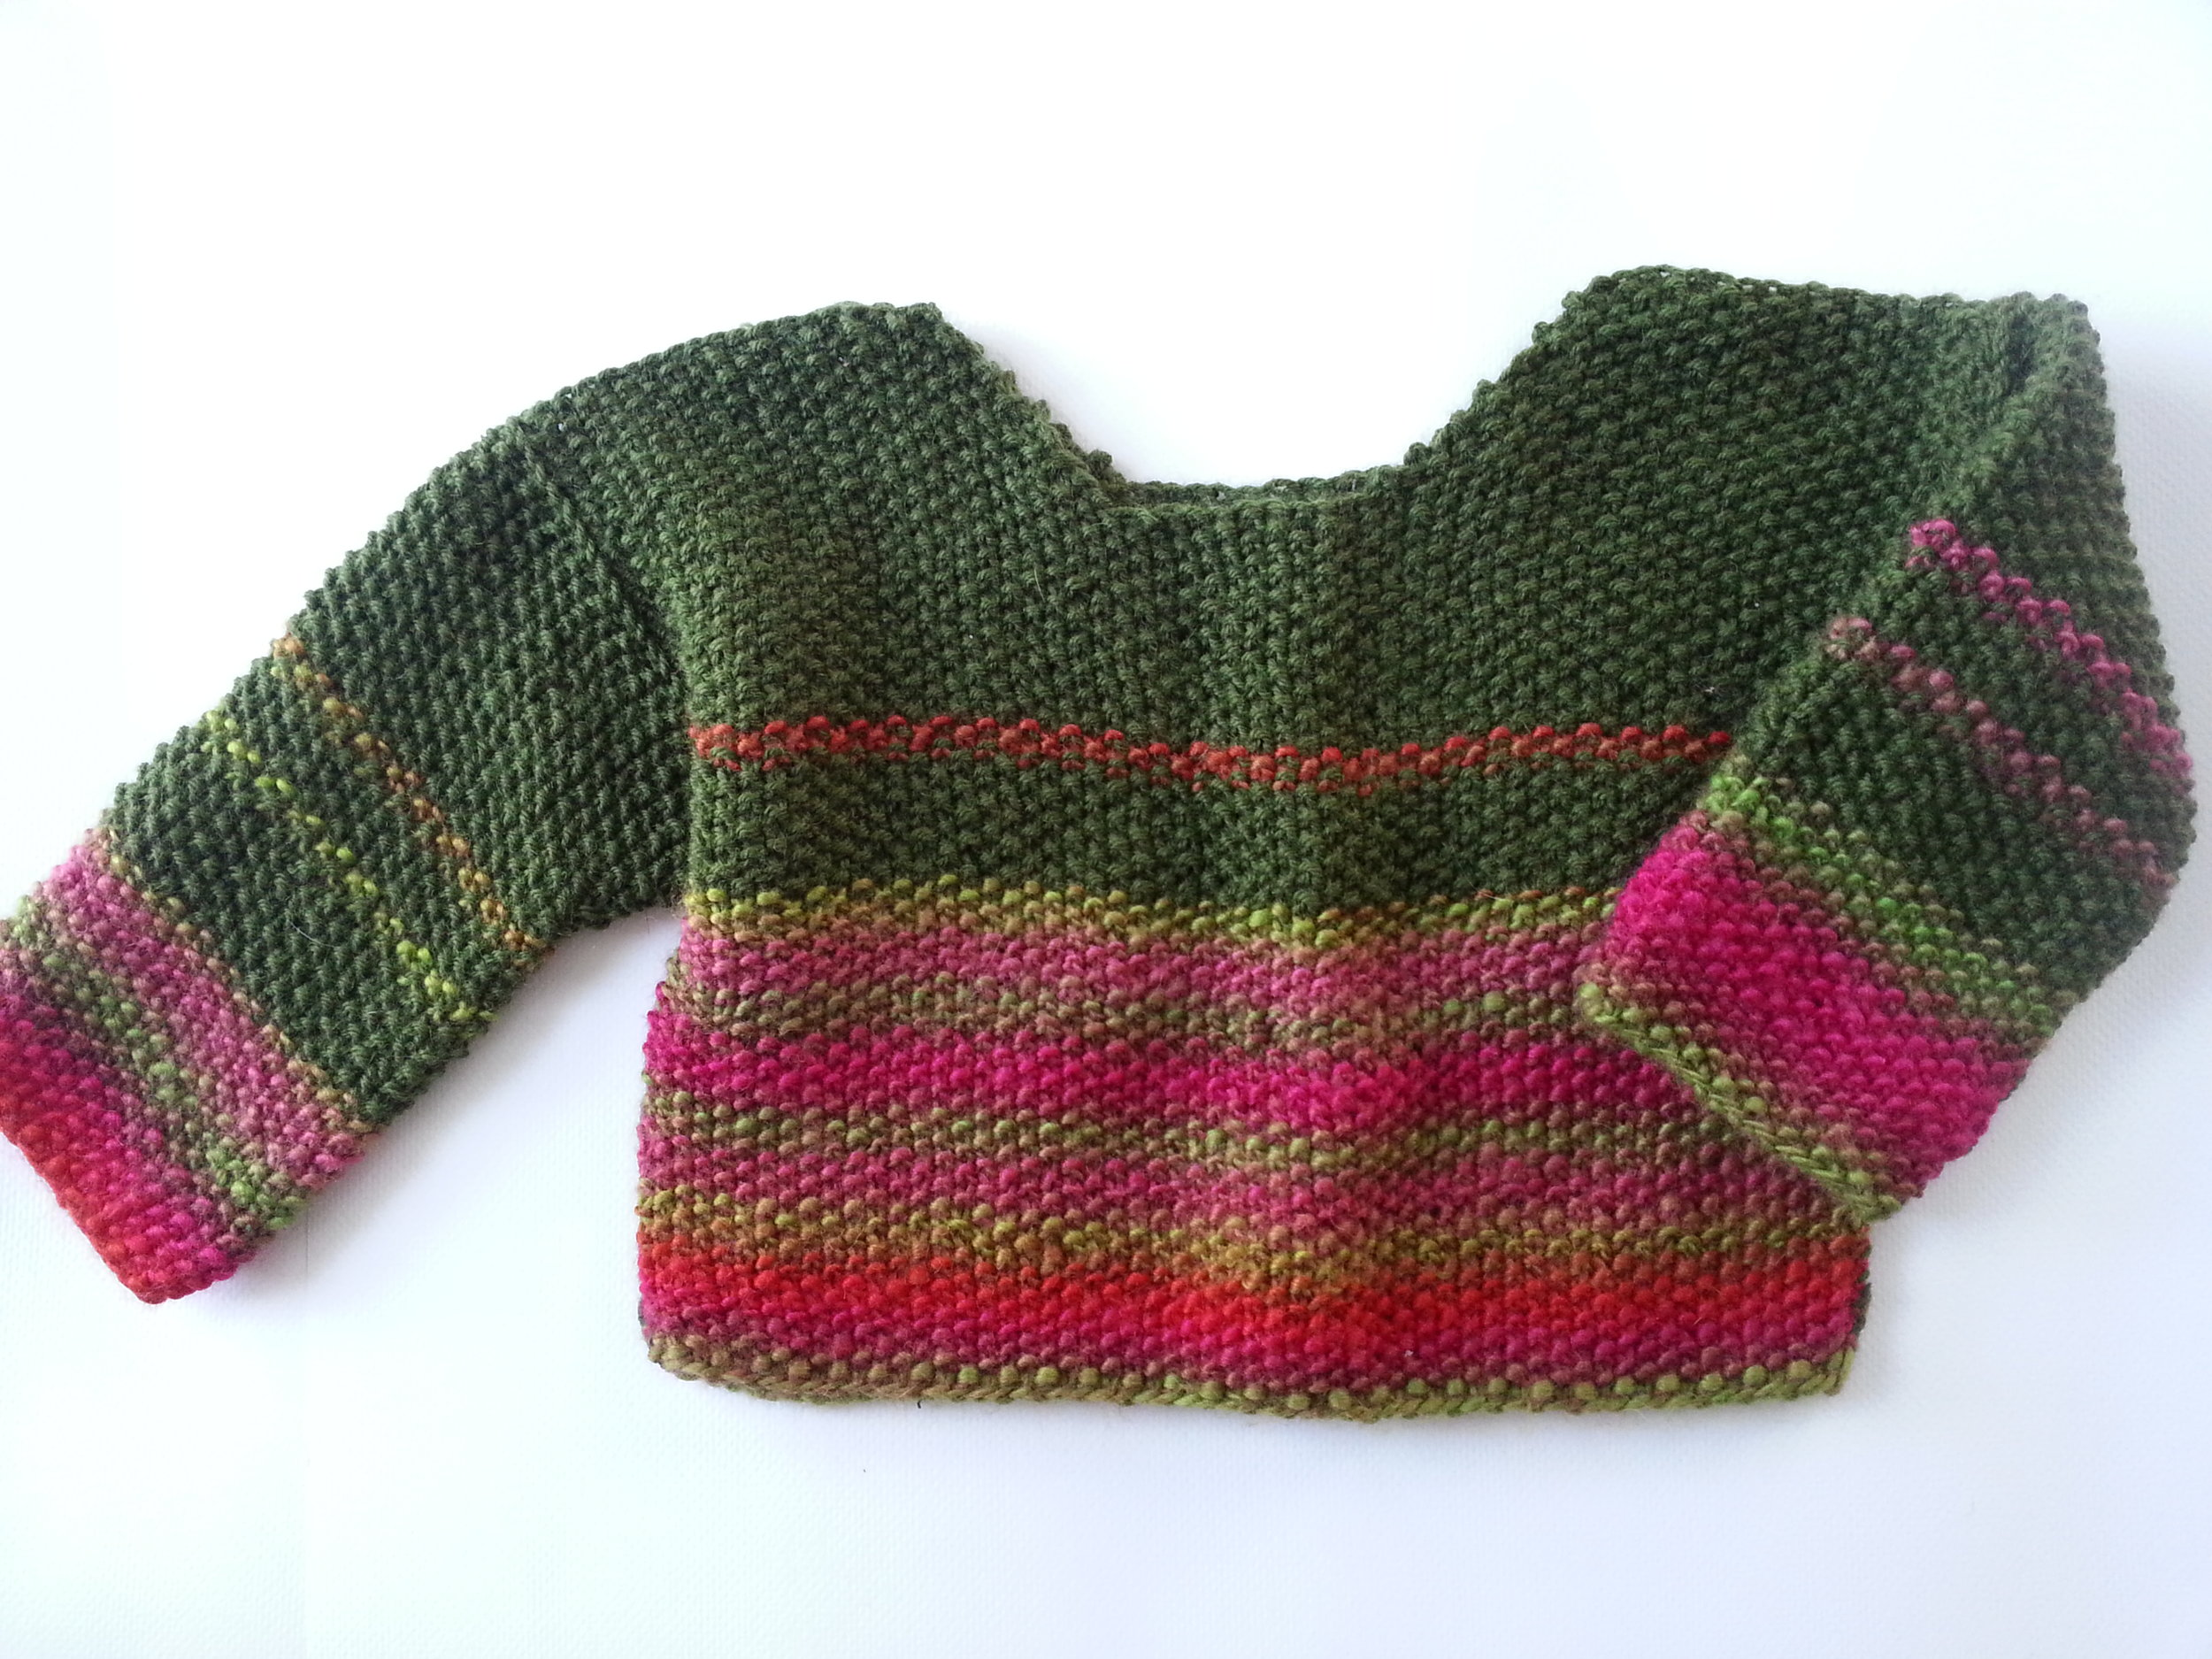 cotton baby sweater.jpg